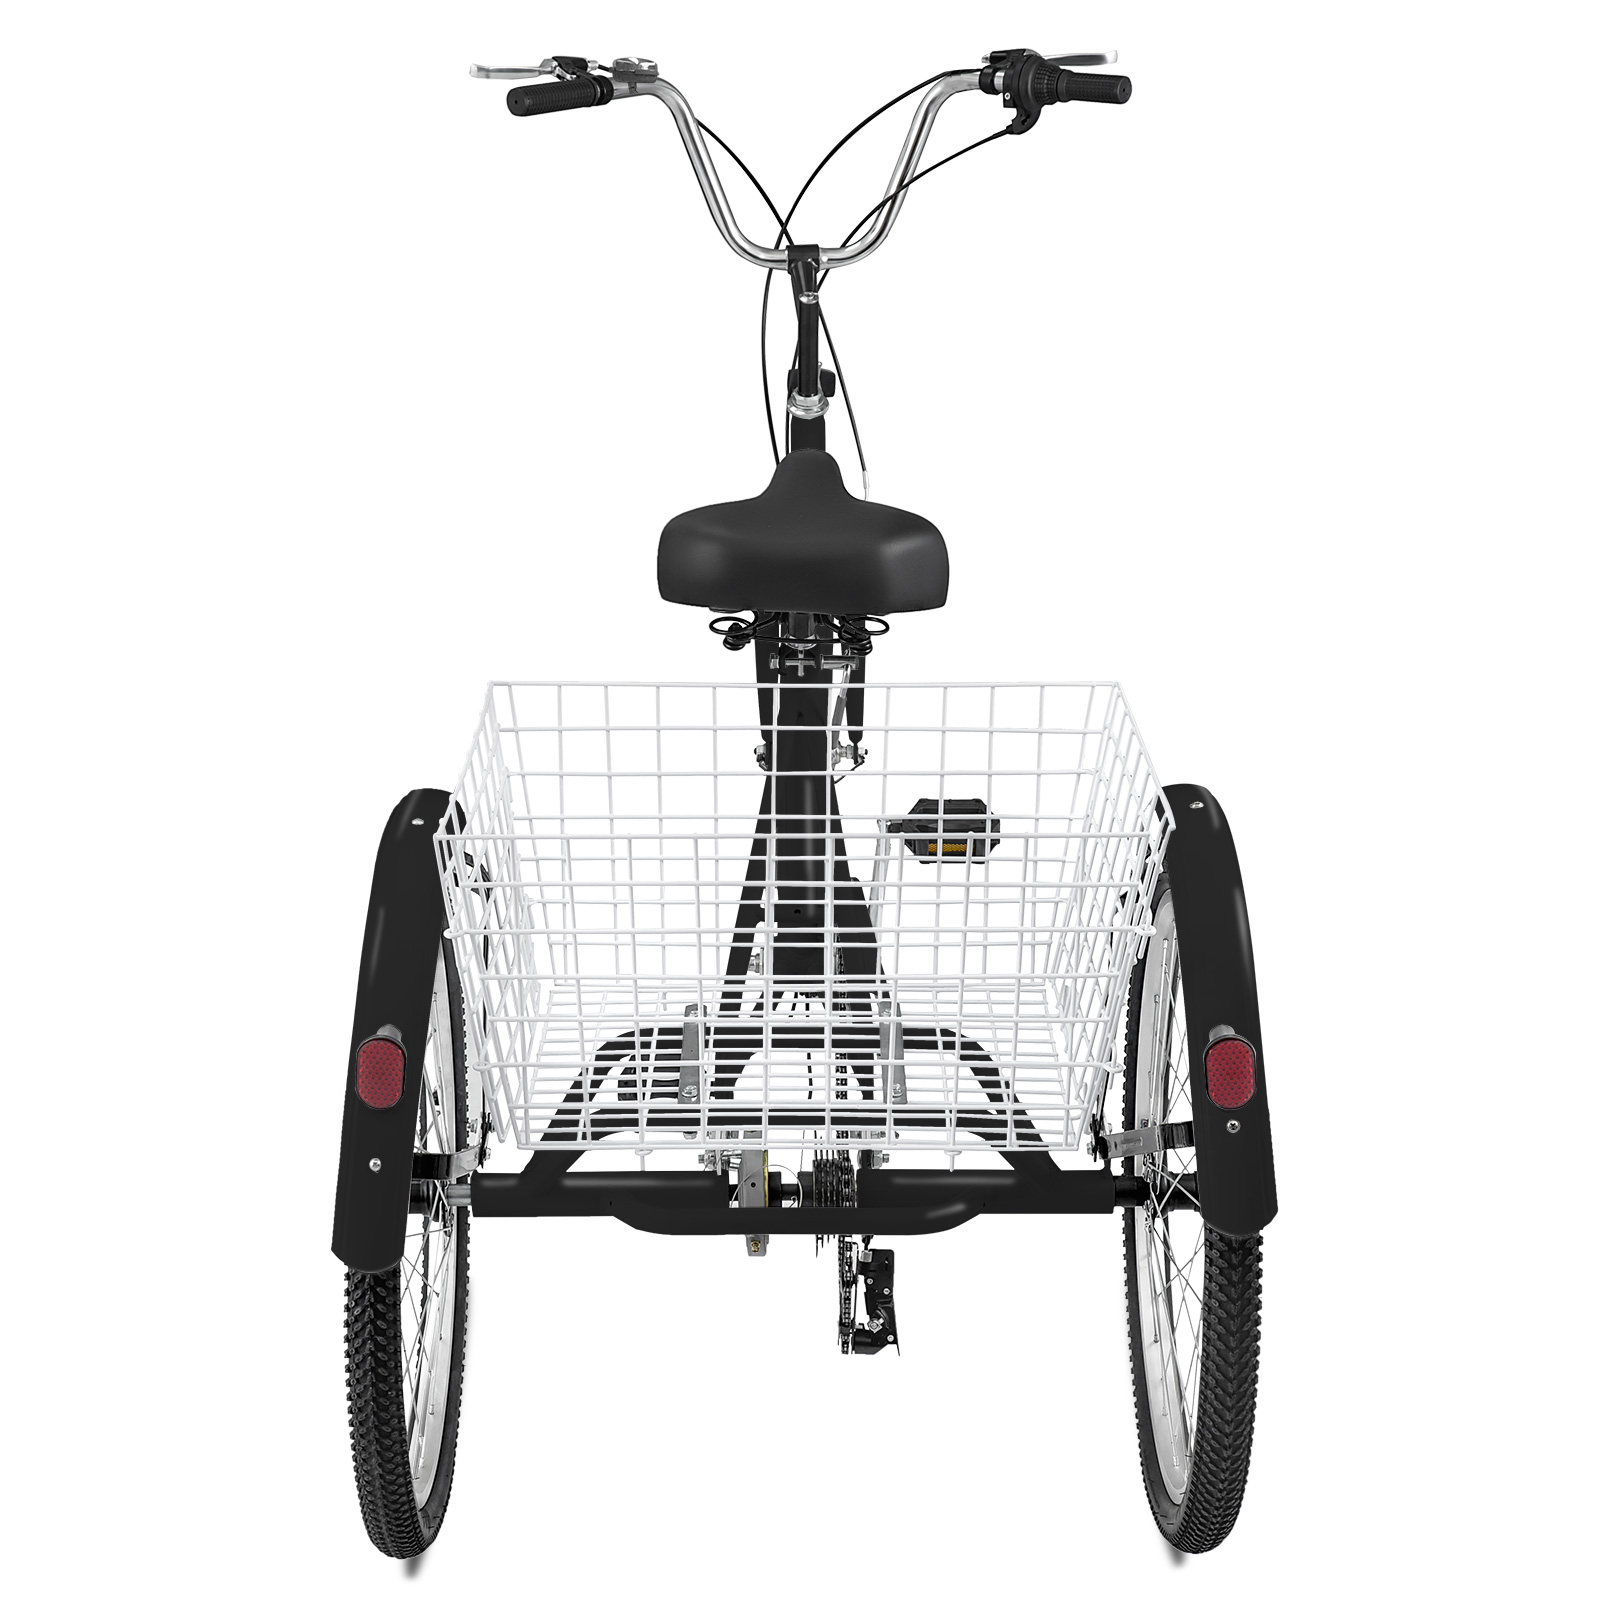 20-24-26-034-Adult-Tricycle-1-7-Speed-3-Wheel-Large-Basket-For-Shopping-Optional thumbnail 360